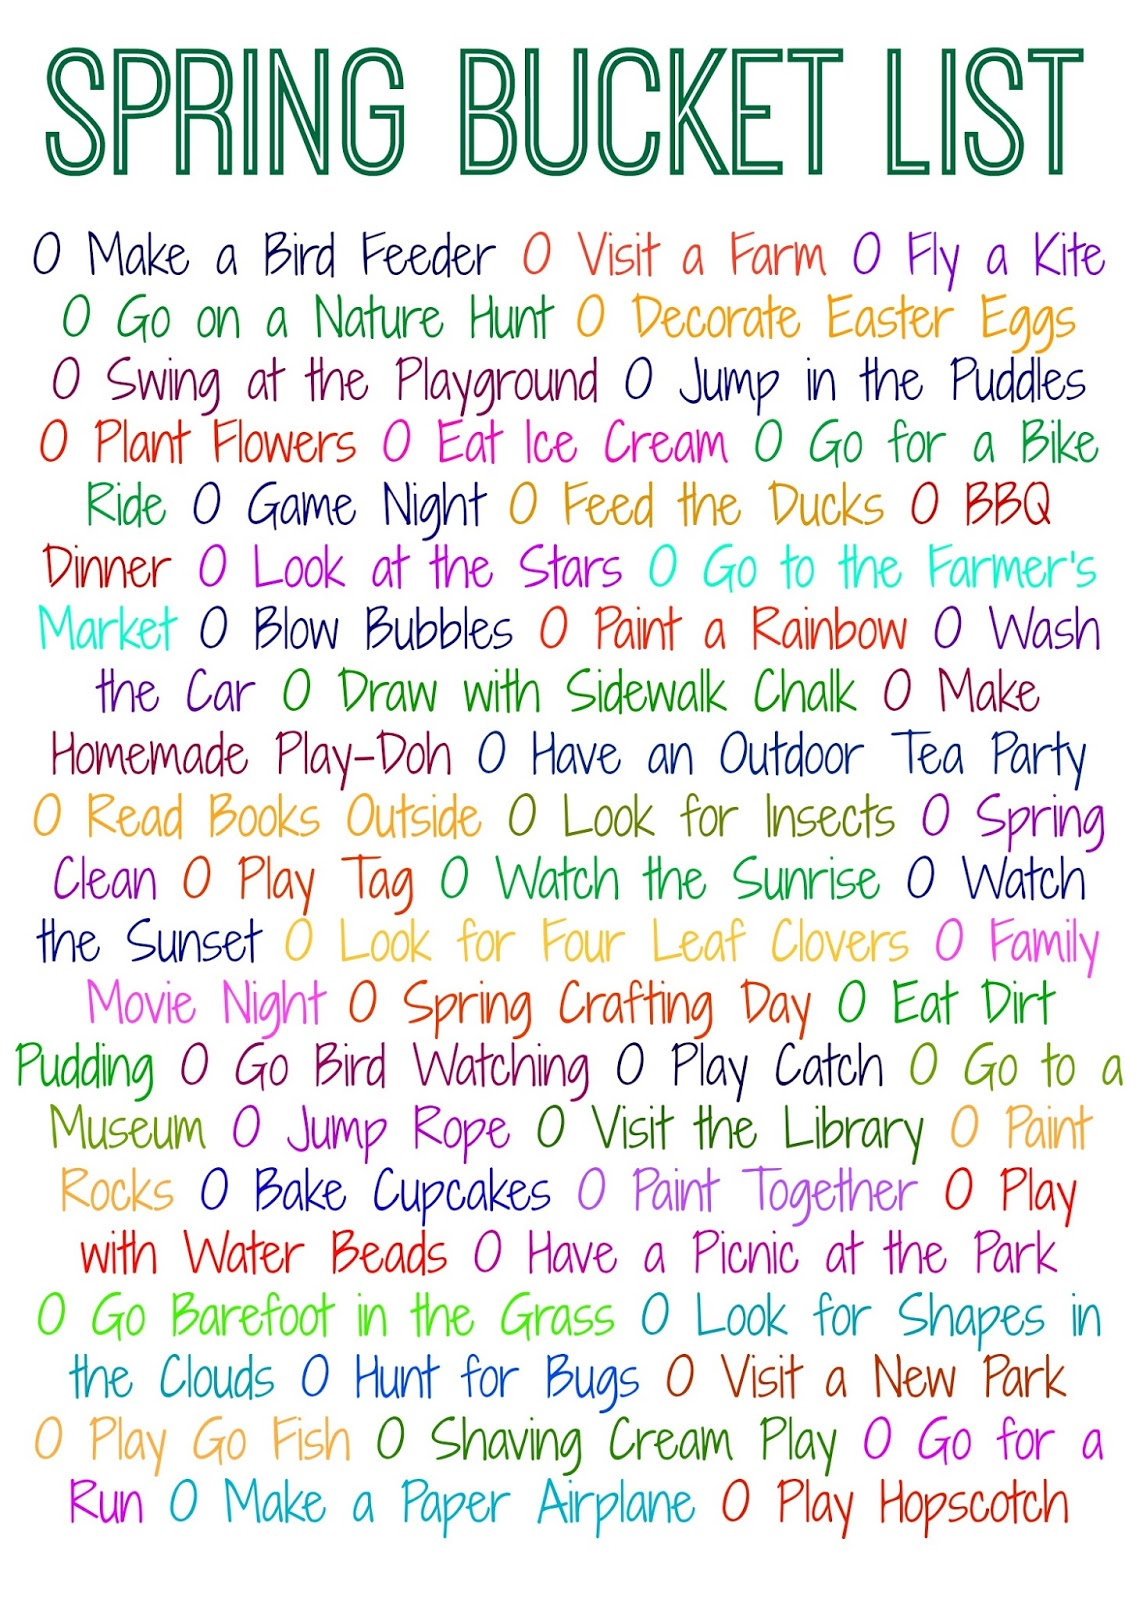 50 Things To Do This Spring Free Printable